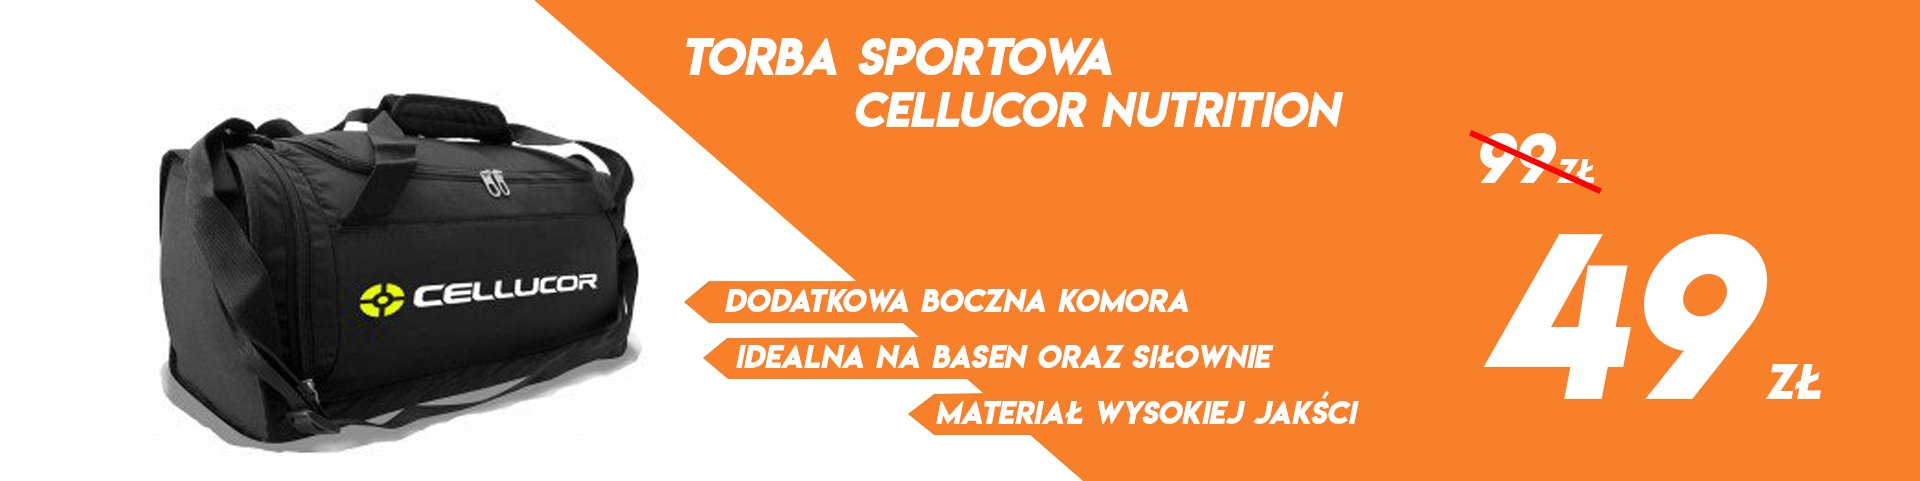 Torba sportowa Cellucor Nutrition